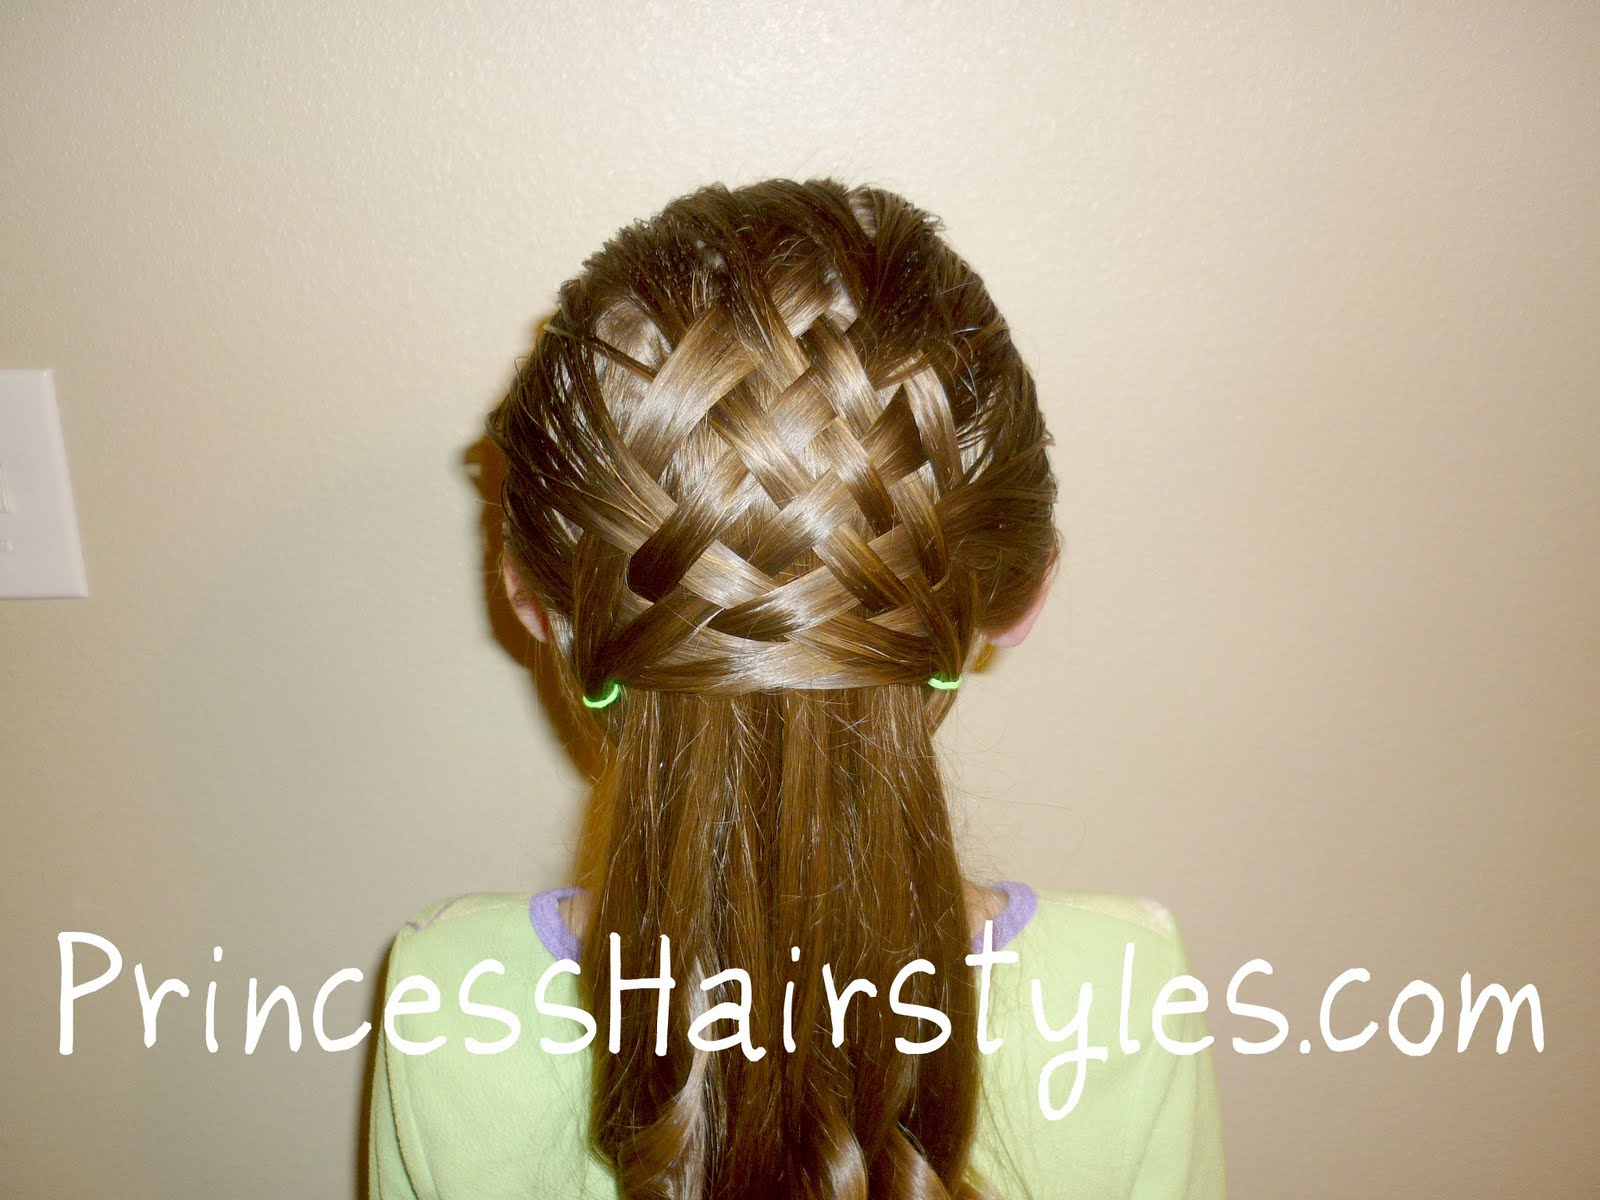 How To Make A Basket Weave Hairstyle : Basket weave hairstyle design by request hairstyles